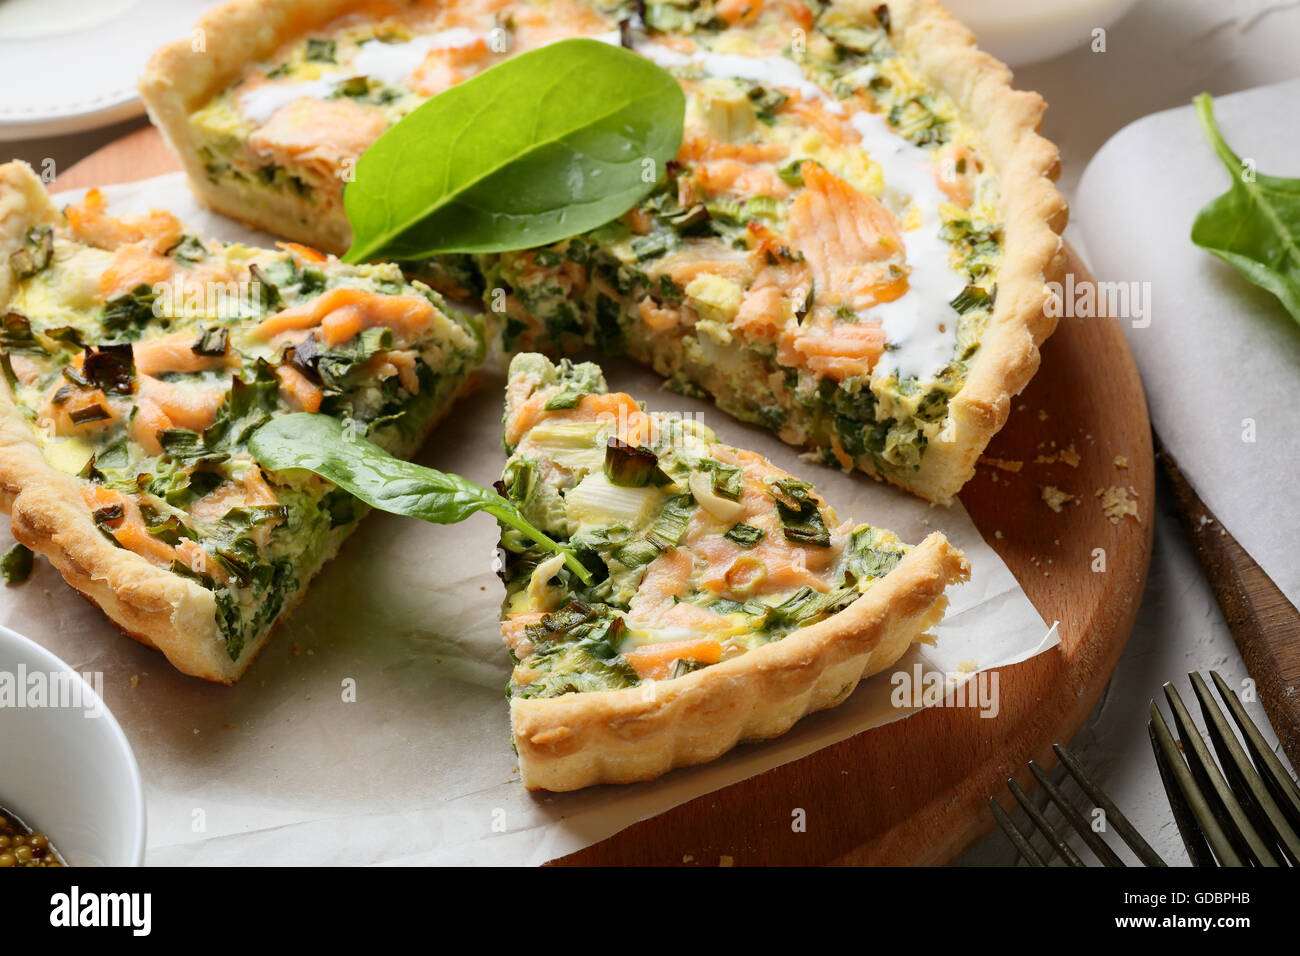 Spinach And Fish Quiche Food Close Up Stock Photo Alamy